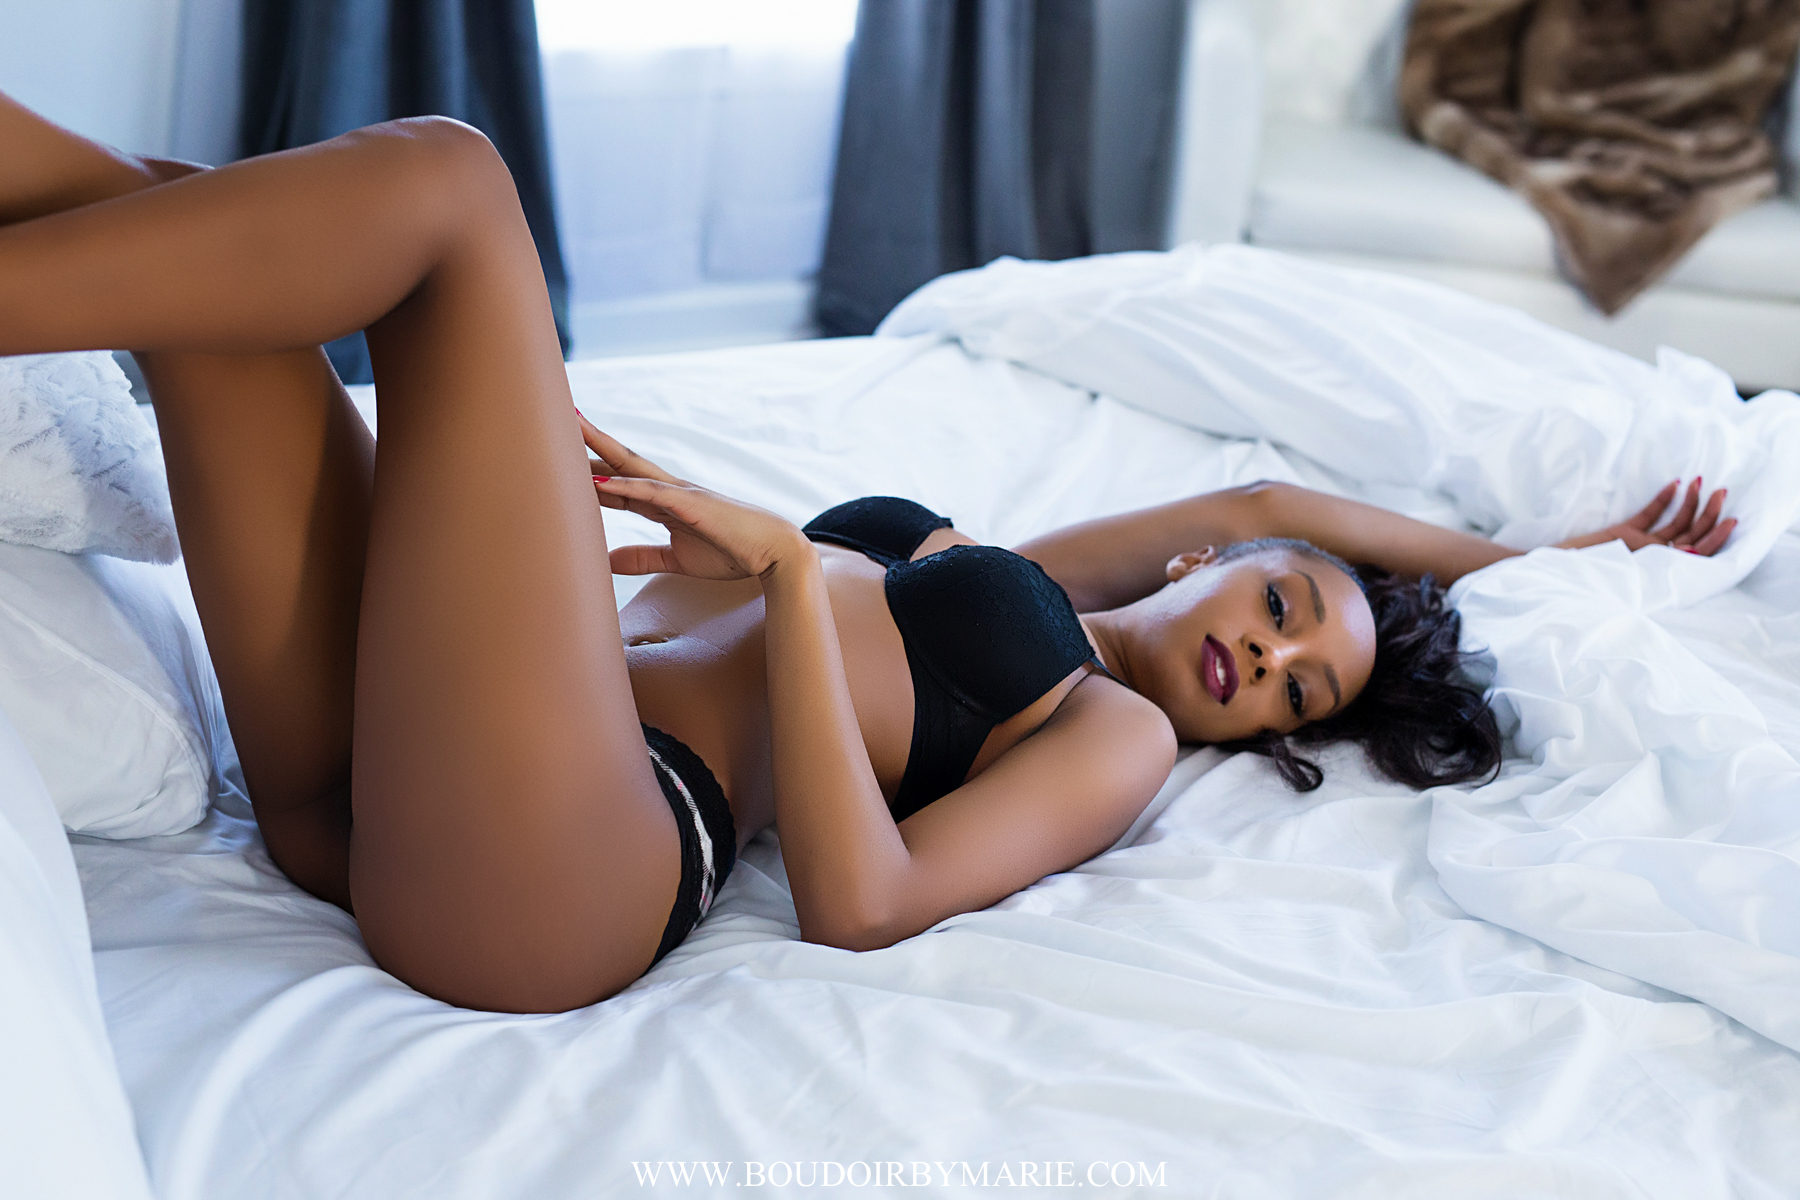 Showcase your curves with Boudoir Photography